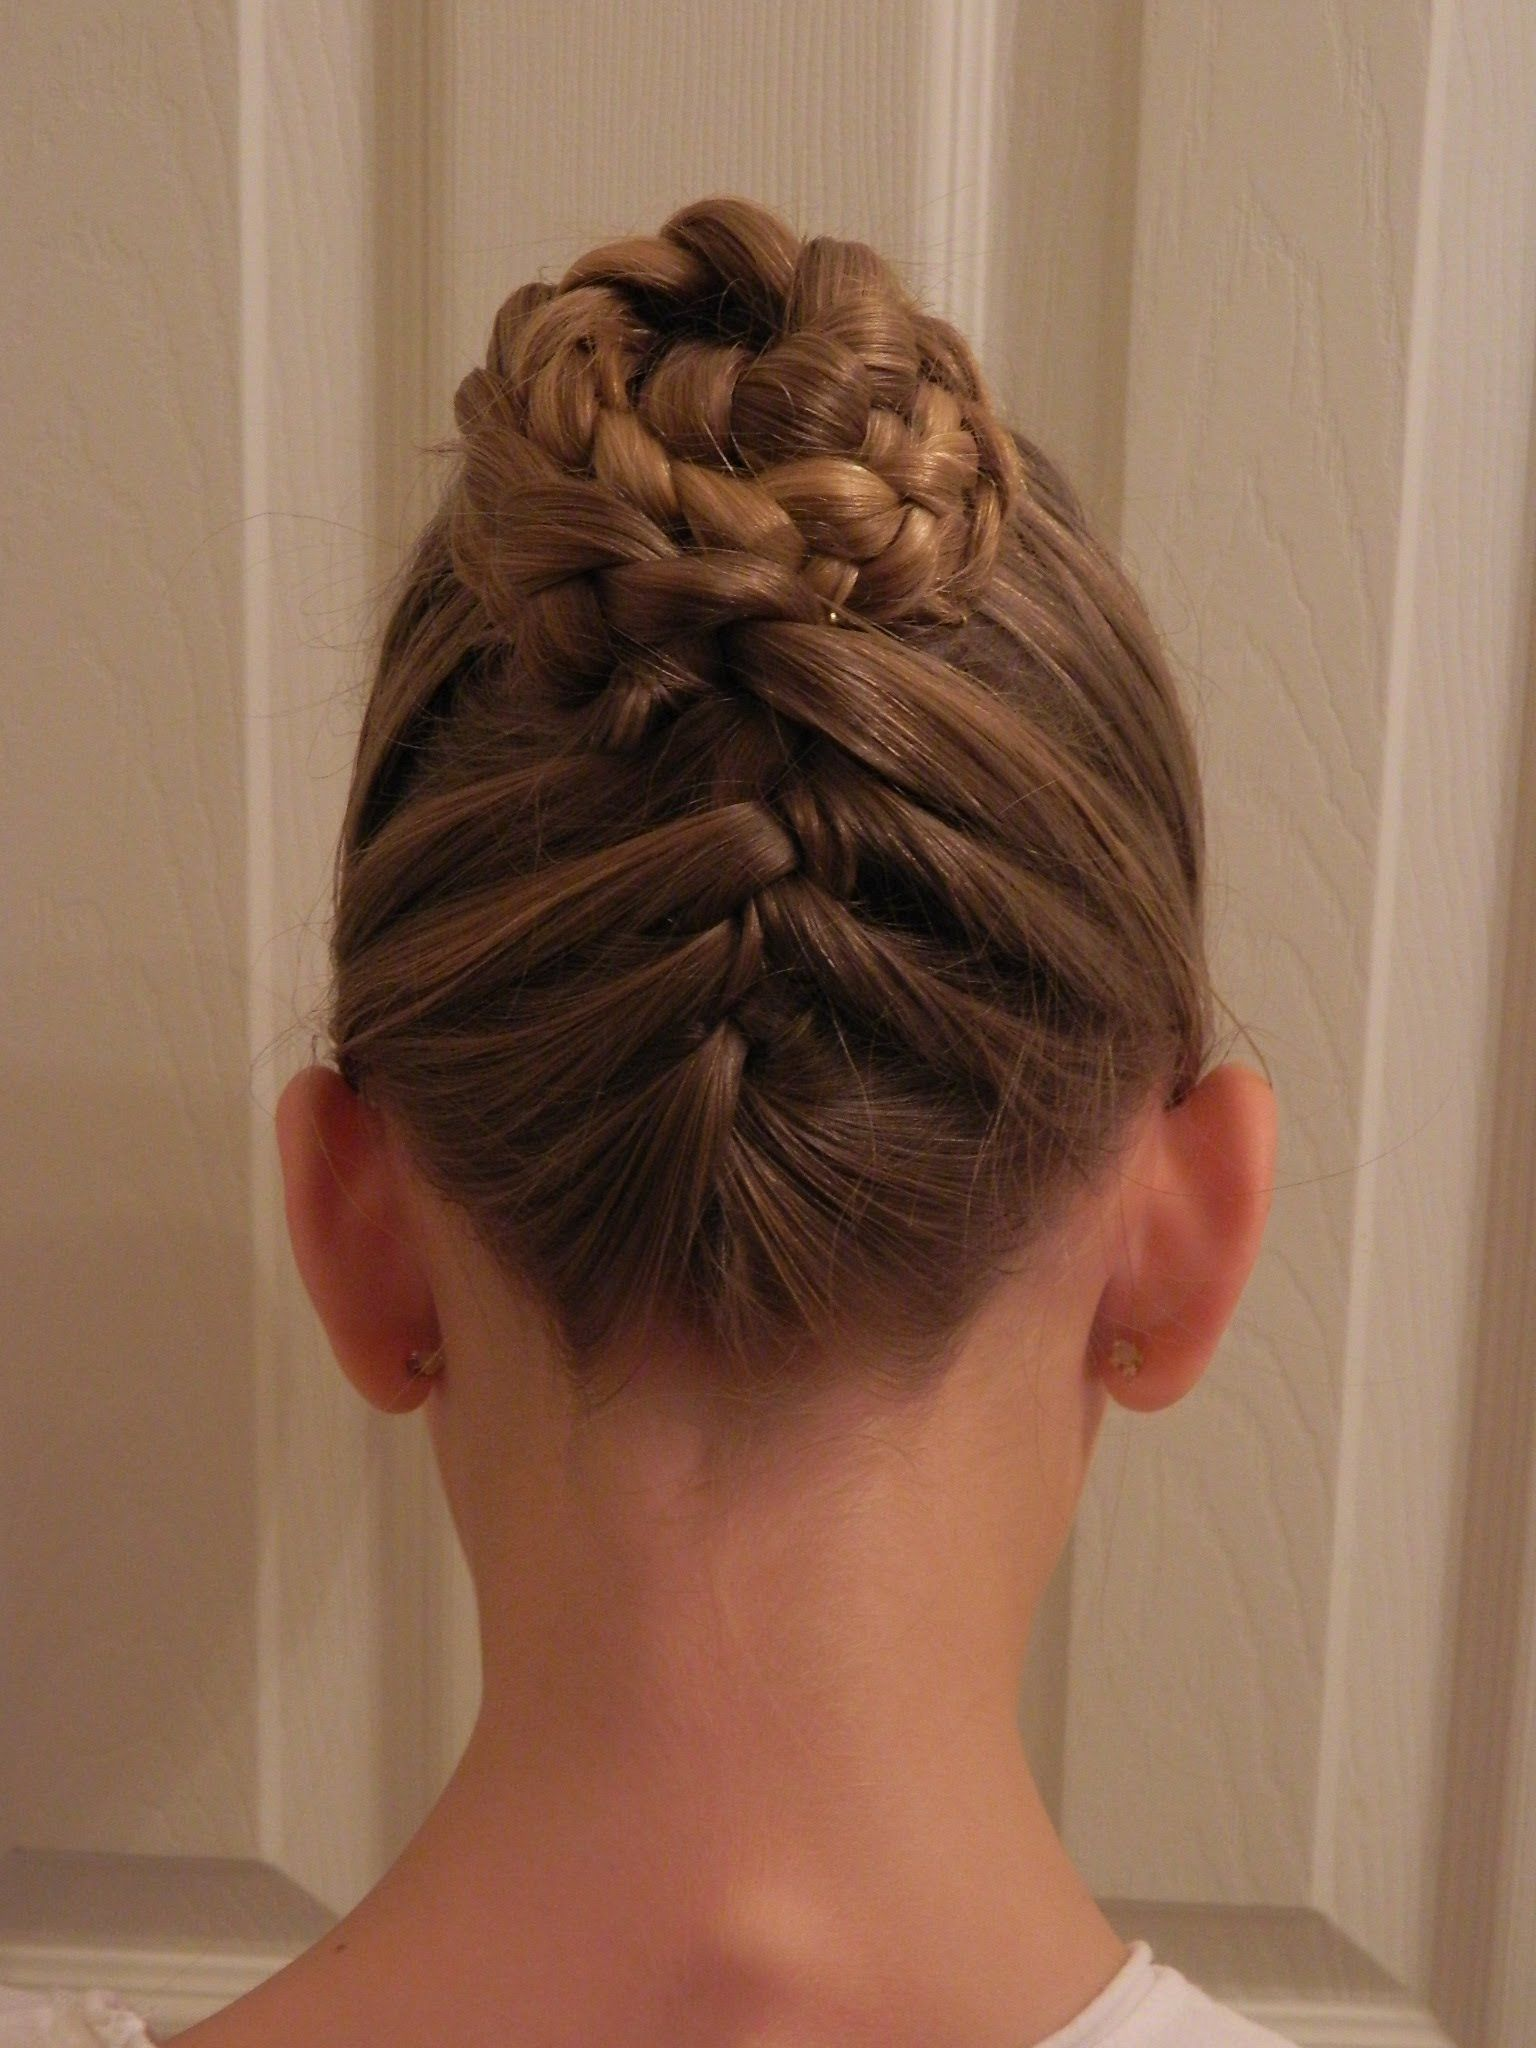 Up u down french braid updo bonita hair do school pinterest